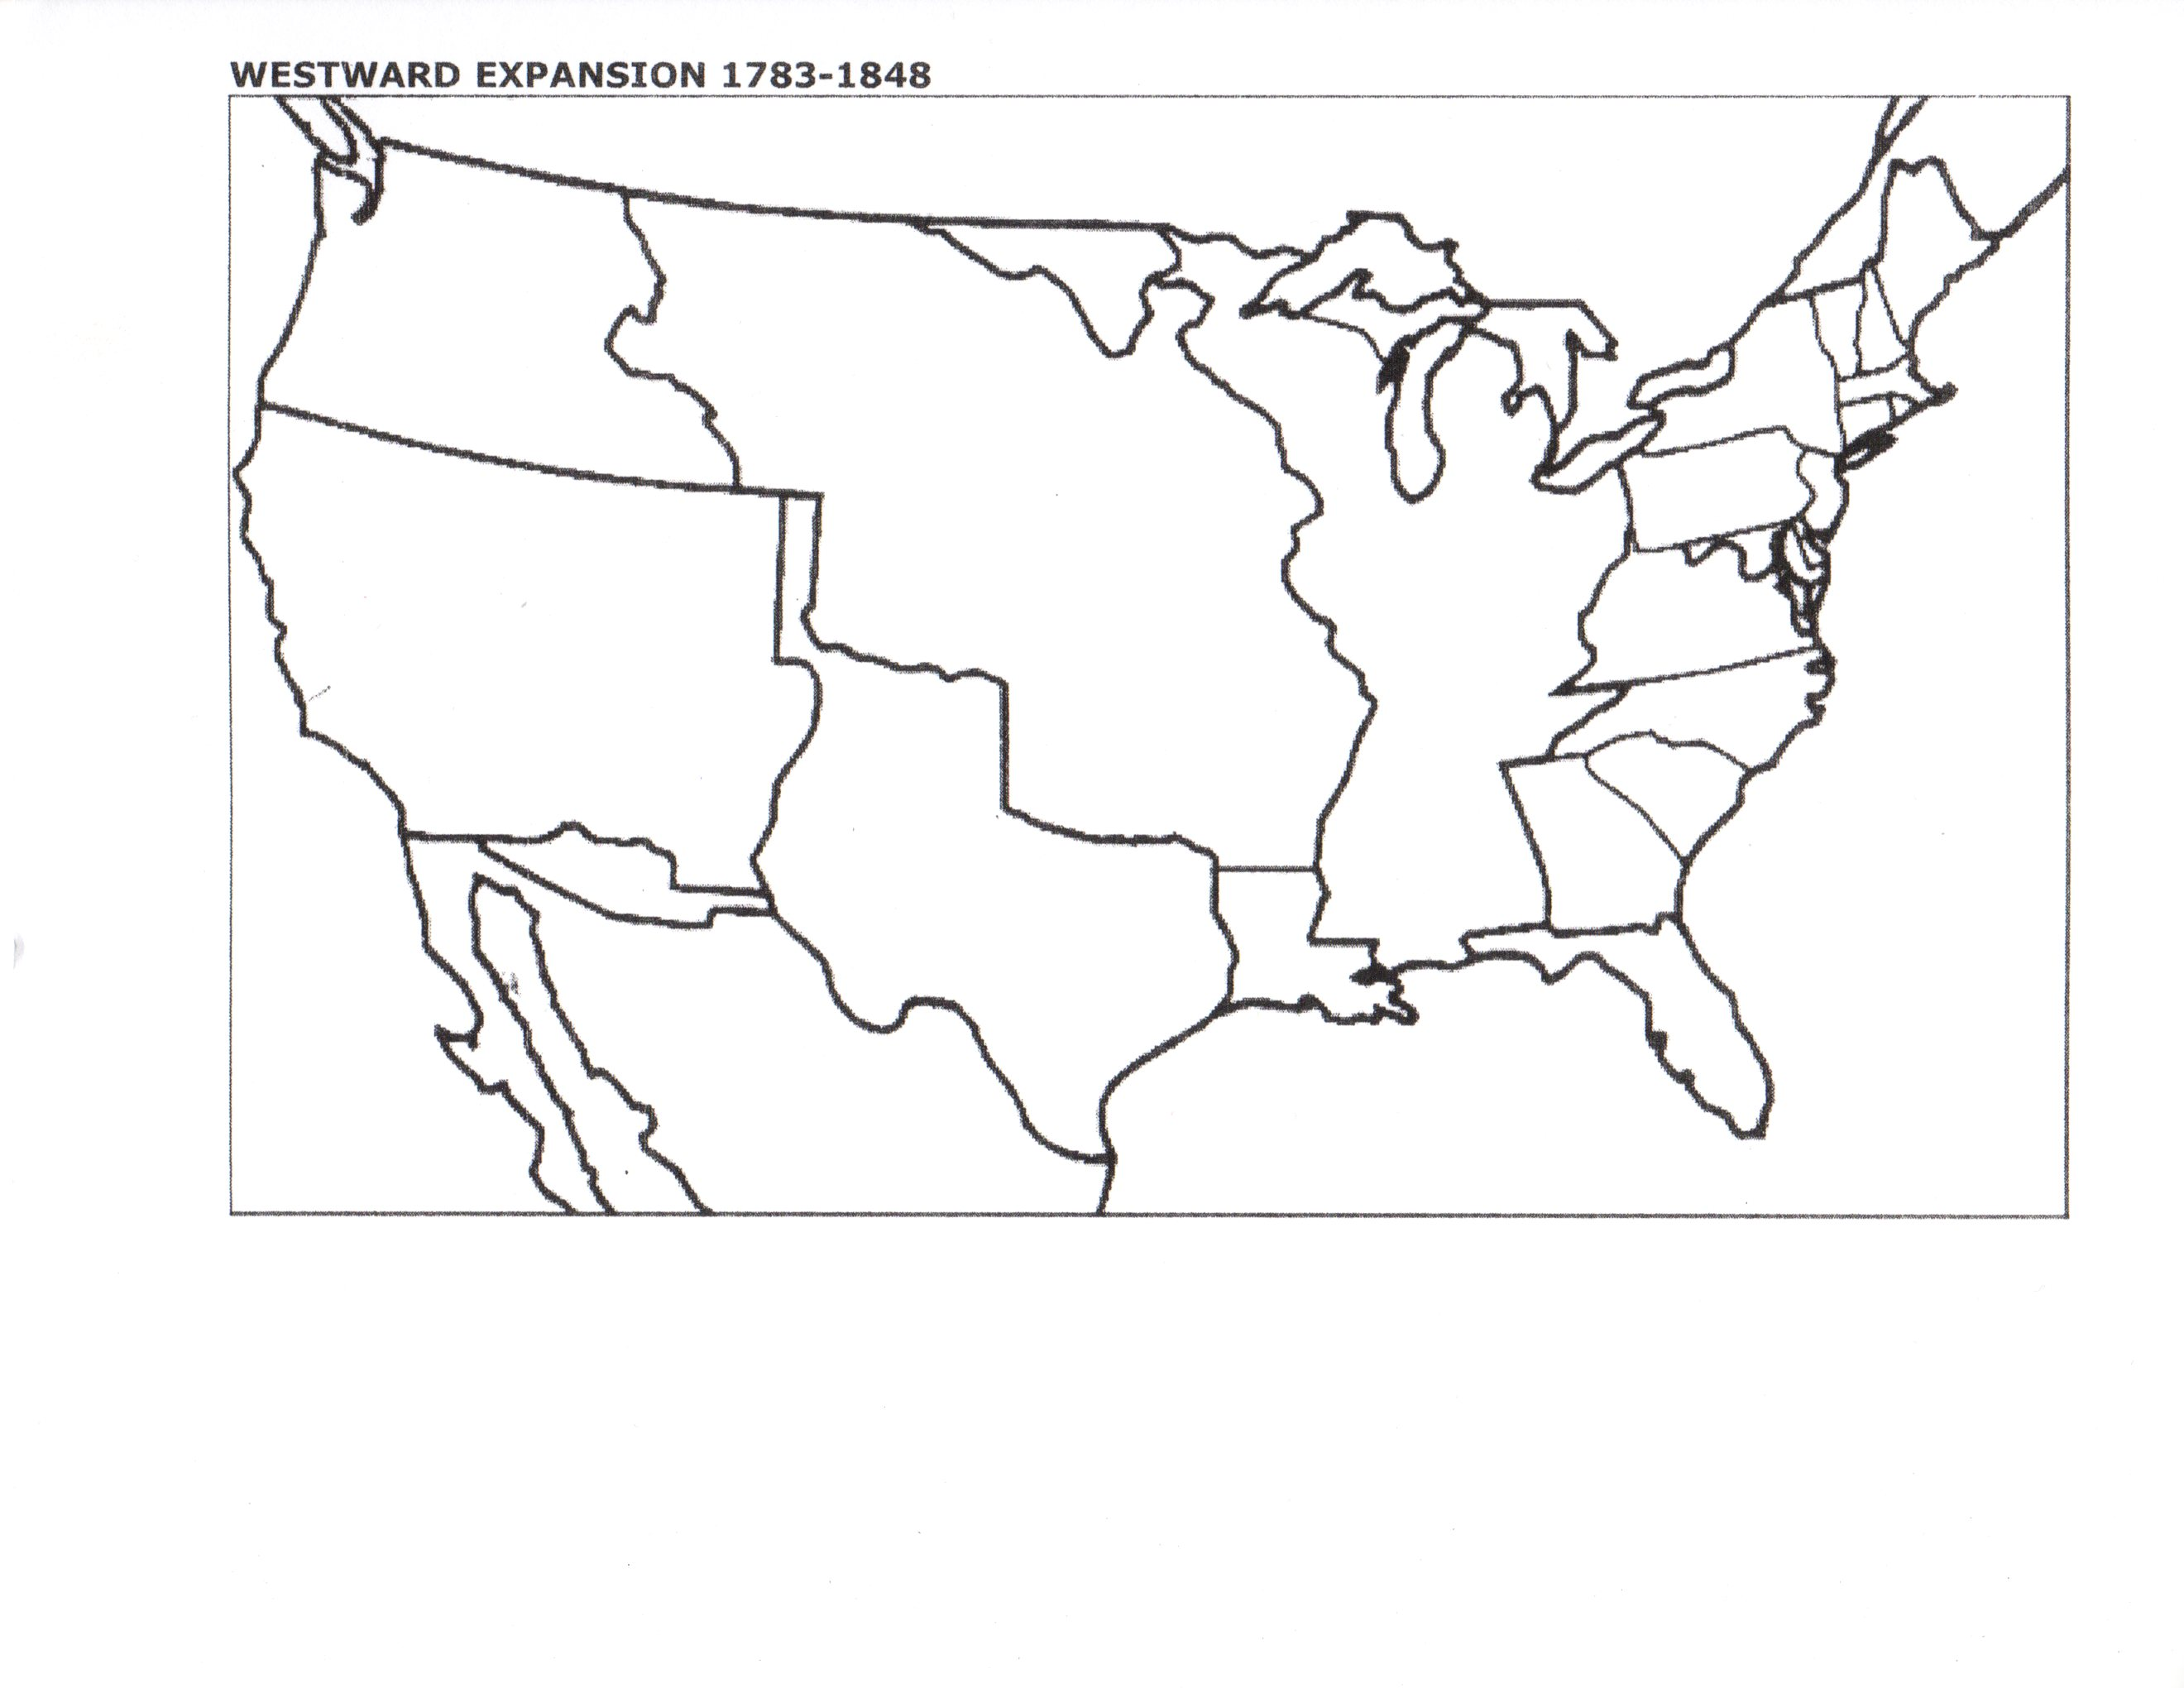 Best Editable USA Map Designs For Microsoft PowerPoint USA County - Detailed map of us during westward expansion